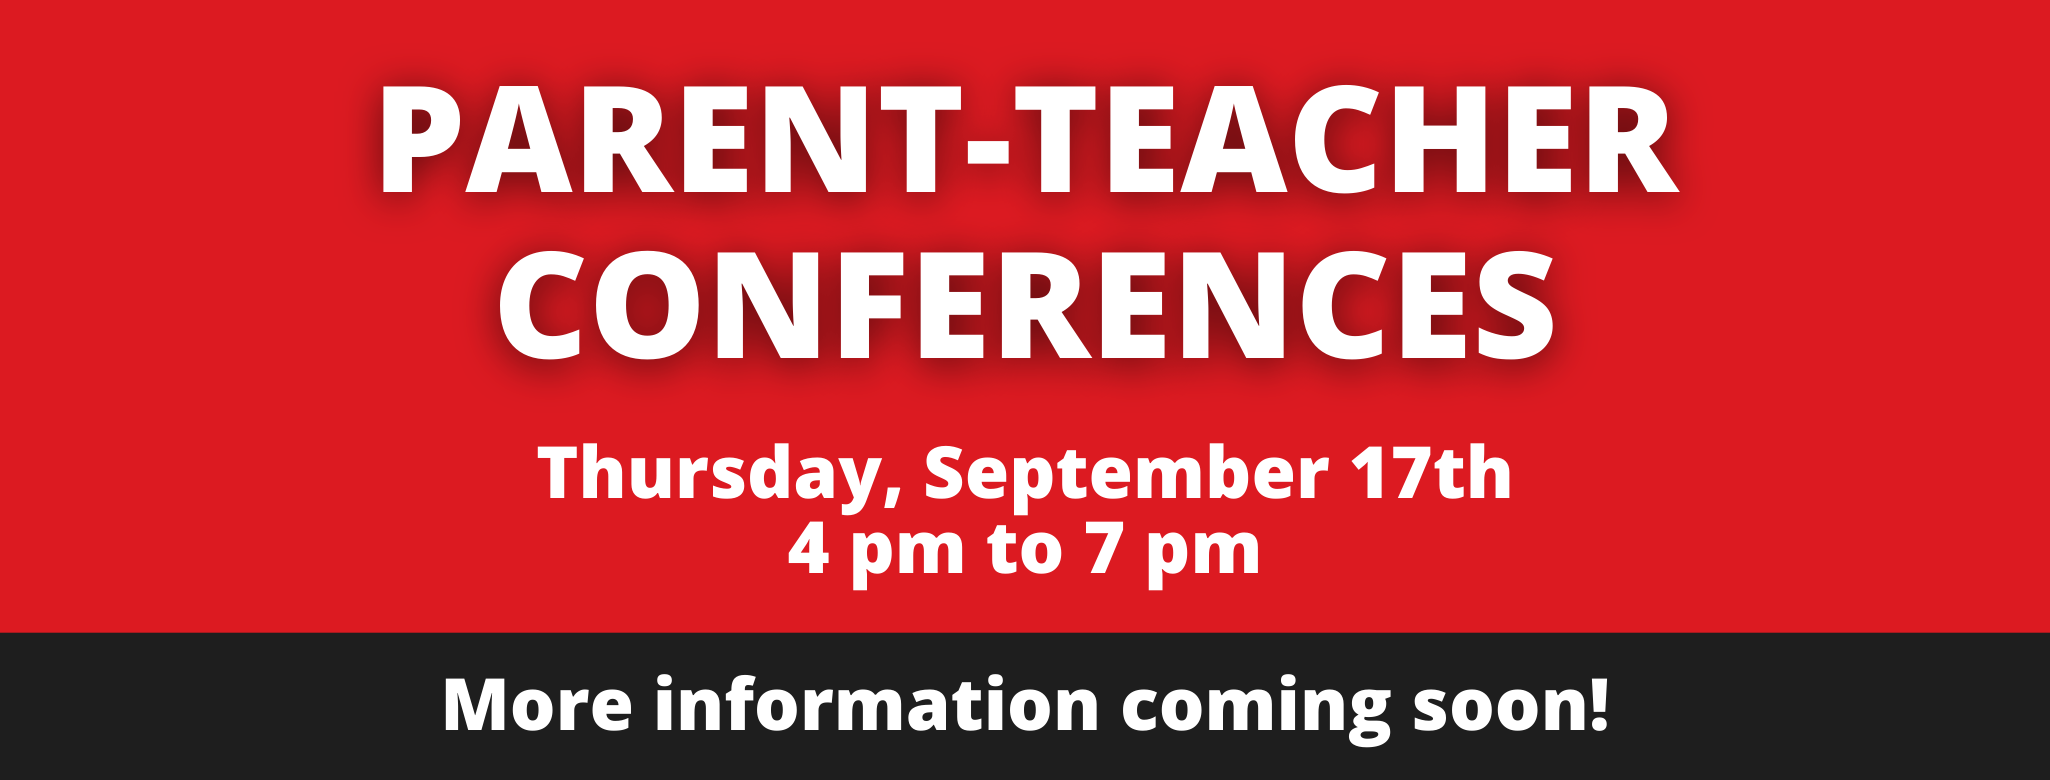 Conferences on Thursday, September 17